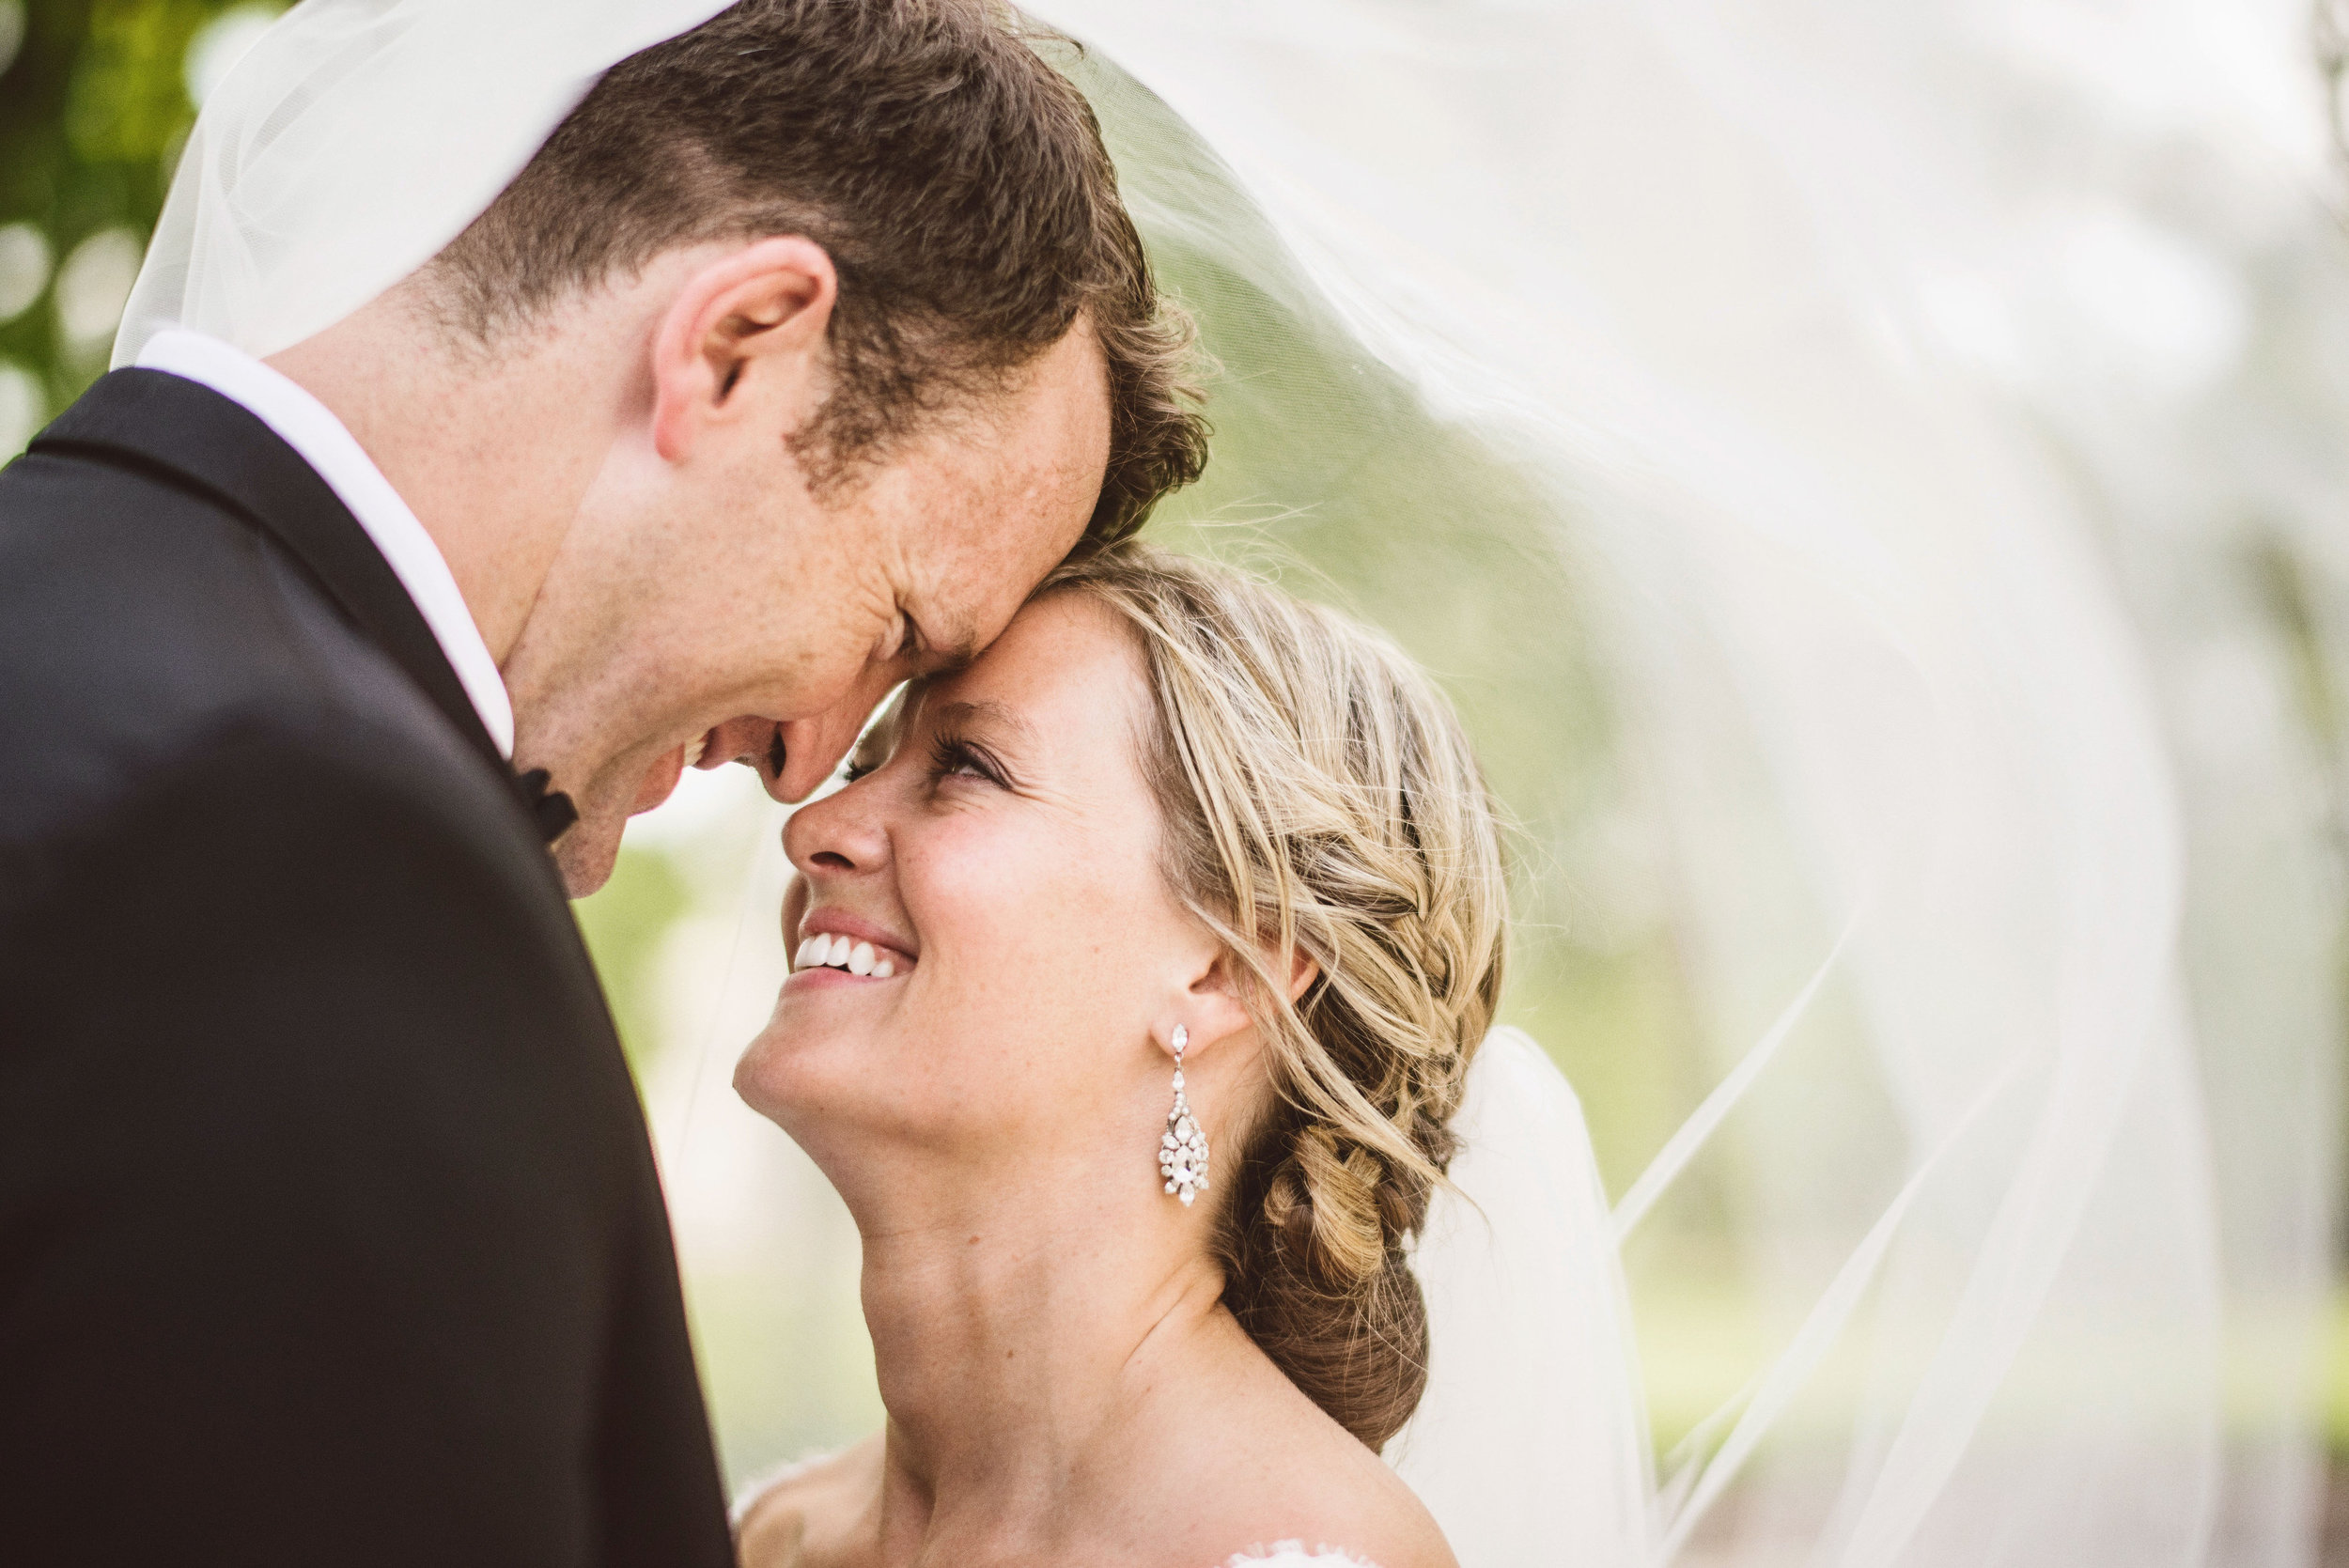 maura_david_wedding_portraits_by_lucas_botz_photography_0301